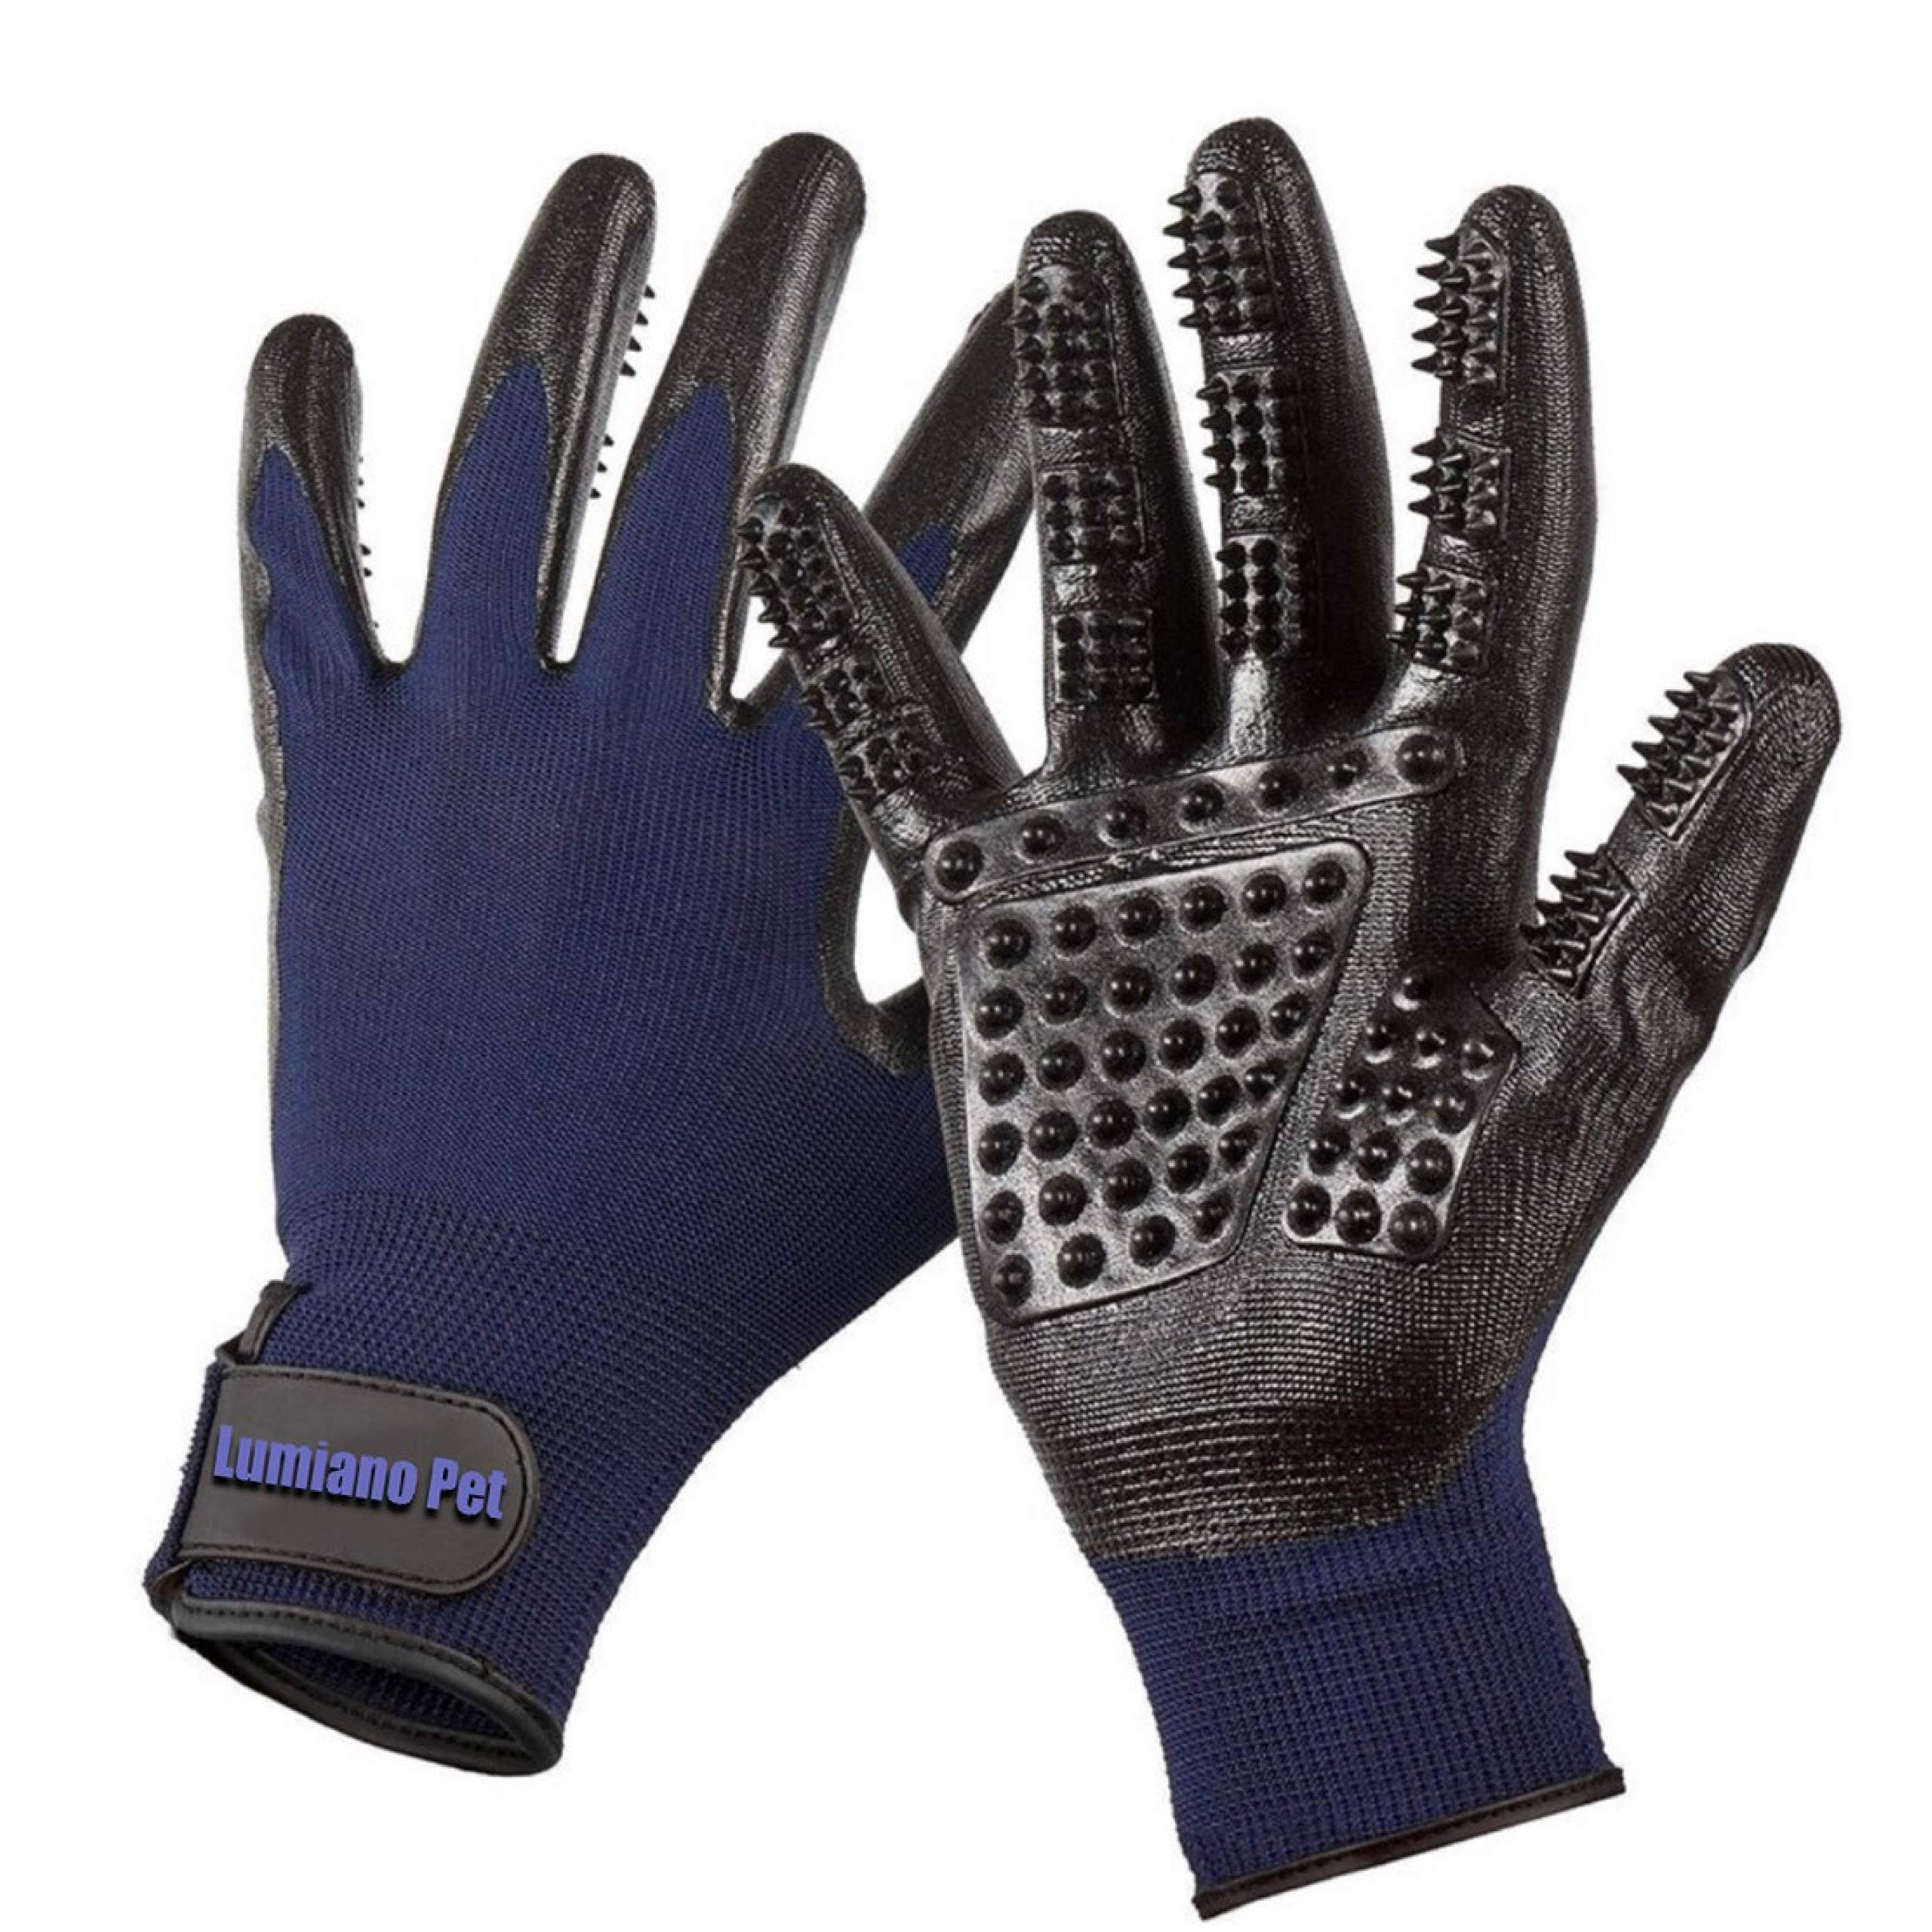 LUMIANO PET Dog Grooming Gloves-Hair Remover Deshadding Brush Glove- Mitt Gentle for Long & Short Fur, Shedding, Bathing, Massaging, for Dogs Cats Horses Big & Small (Navy Blue)